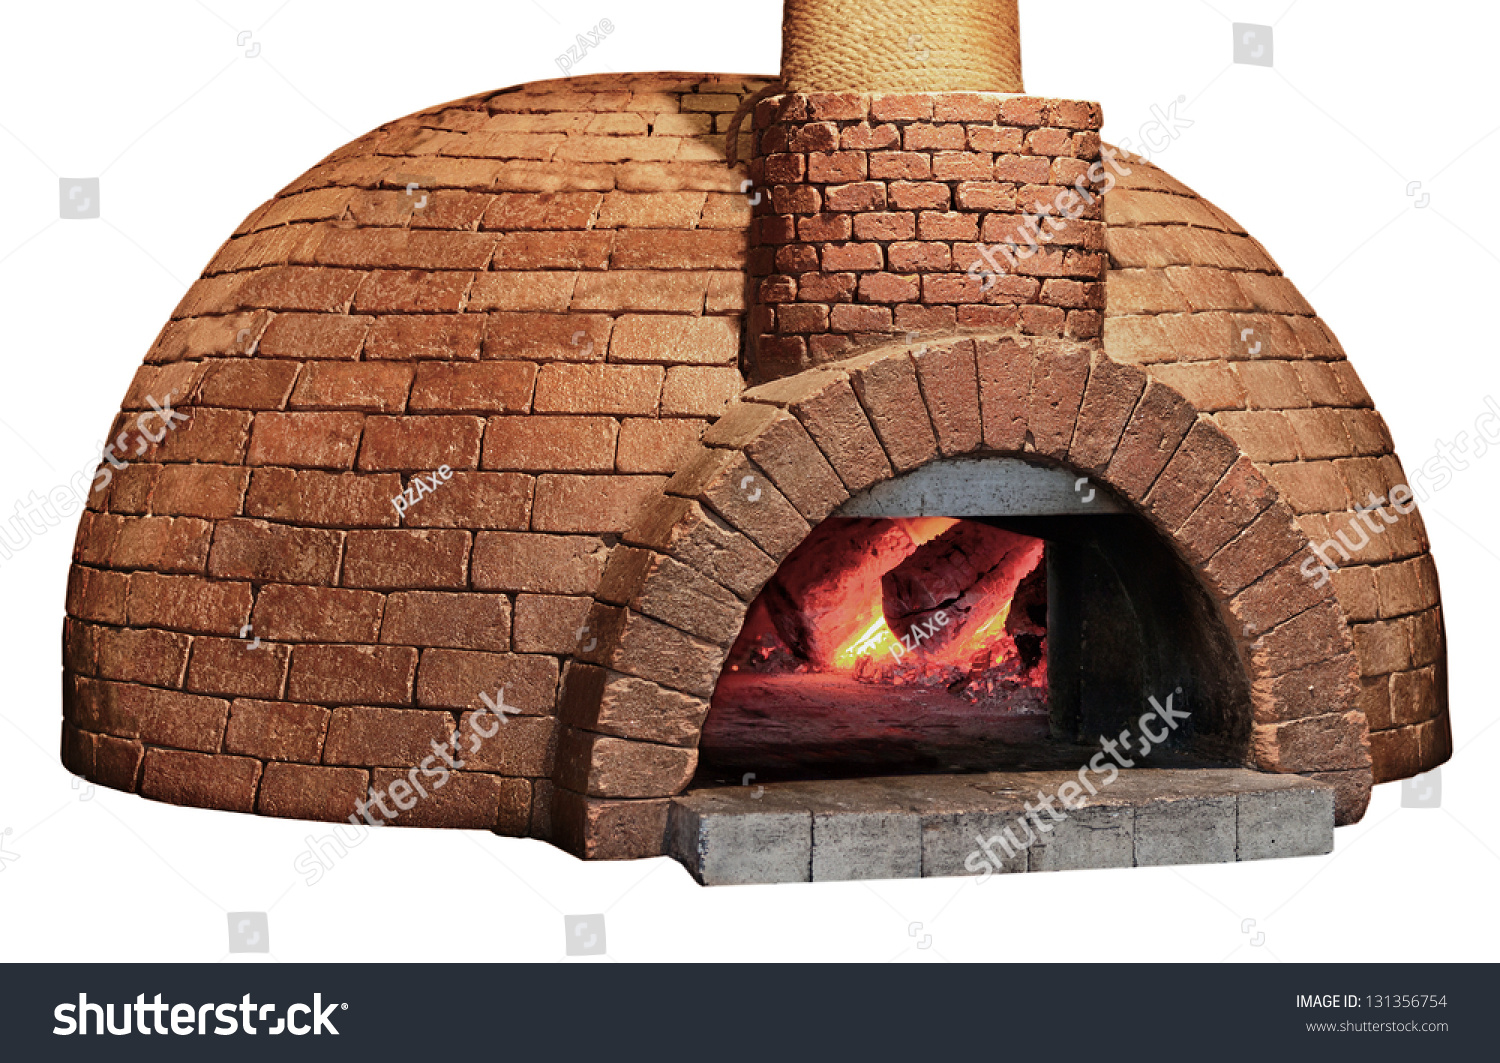 Old Brick Pizza Oven Isolated On A White Background